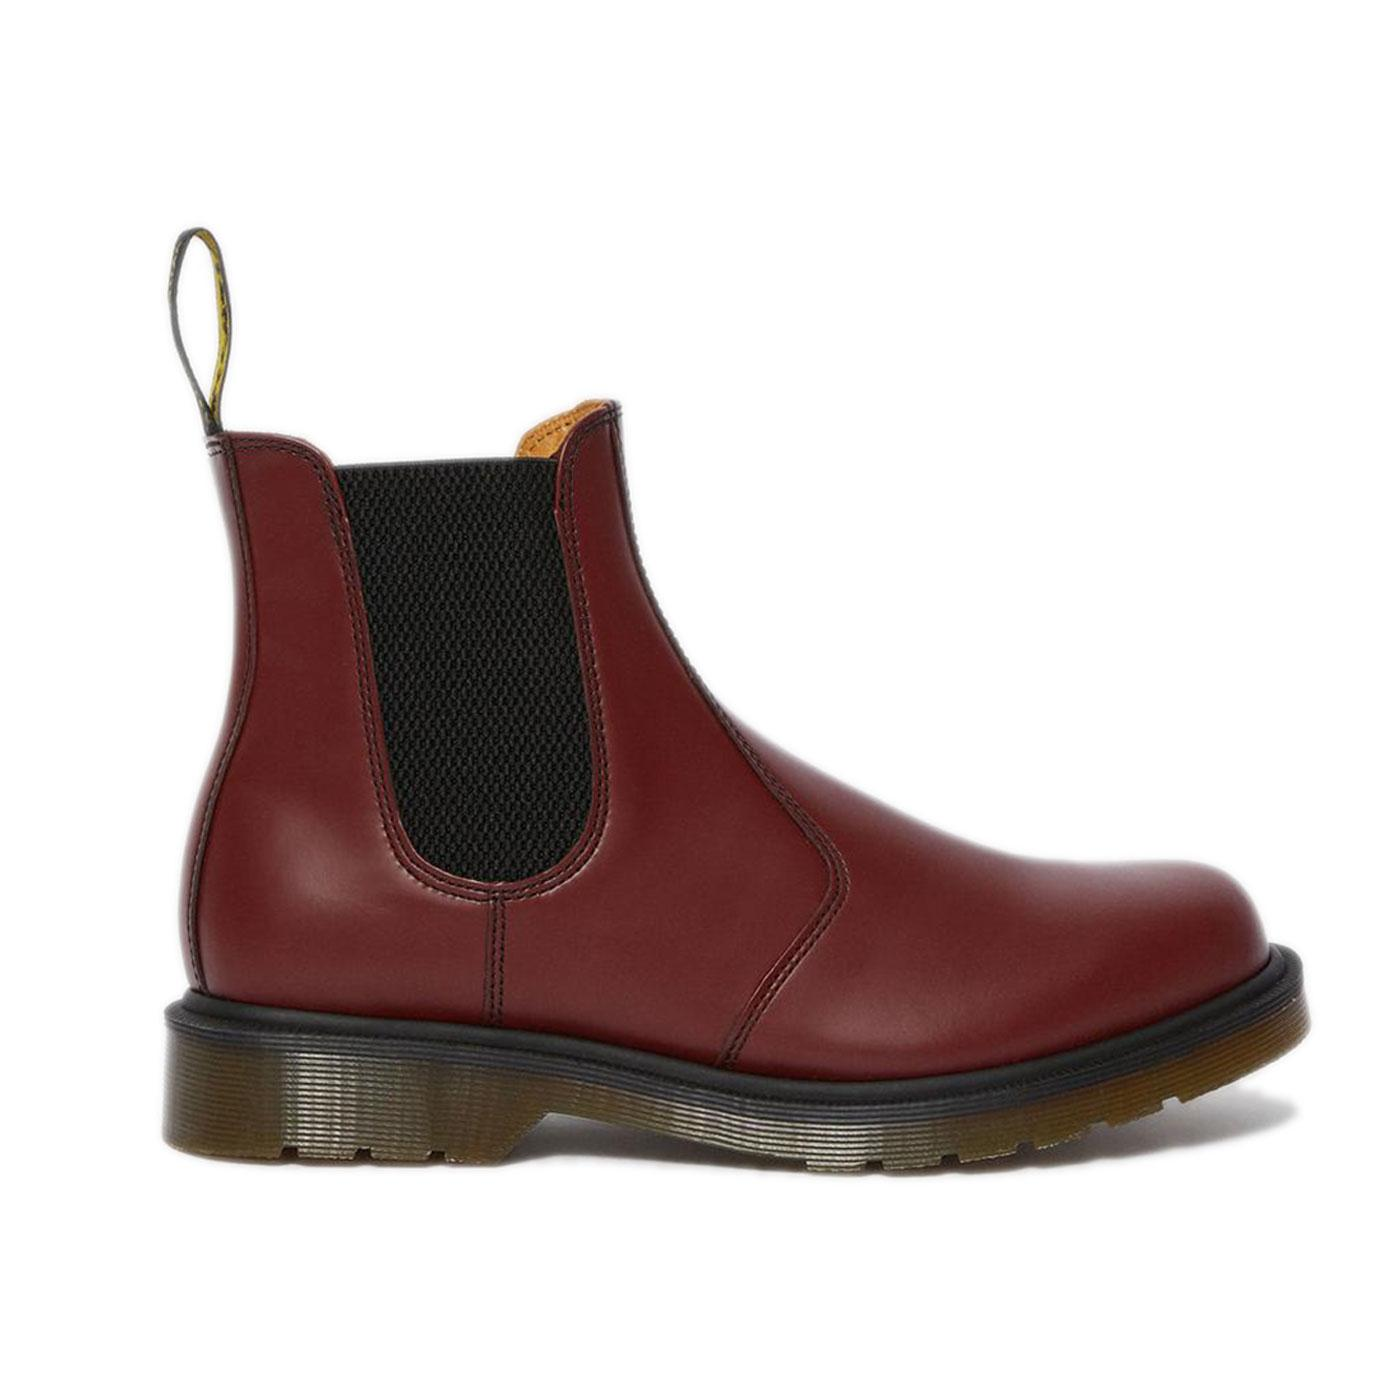 2976 Smooth DR MARTENS Women's Chelsea Boots CR